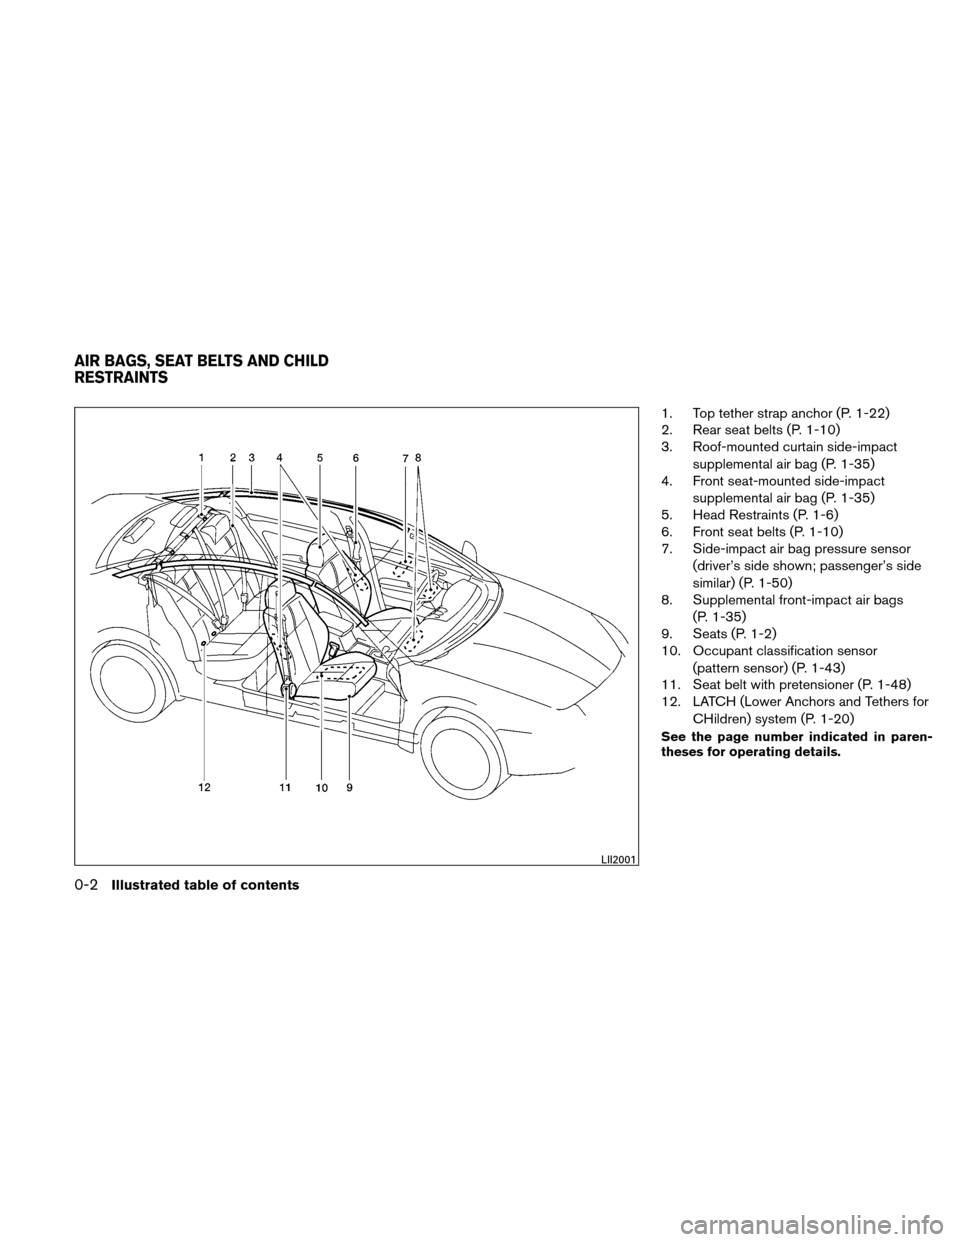 NISSAN ALTIMA HYBRID 2011 L32A / 4.G Owners Manual, Page 21